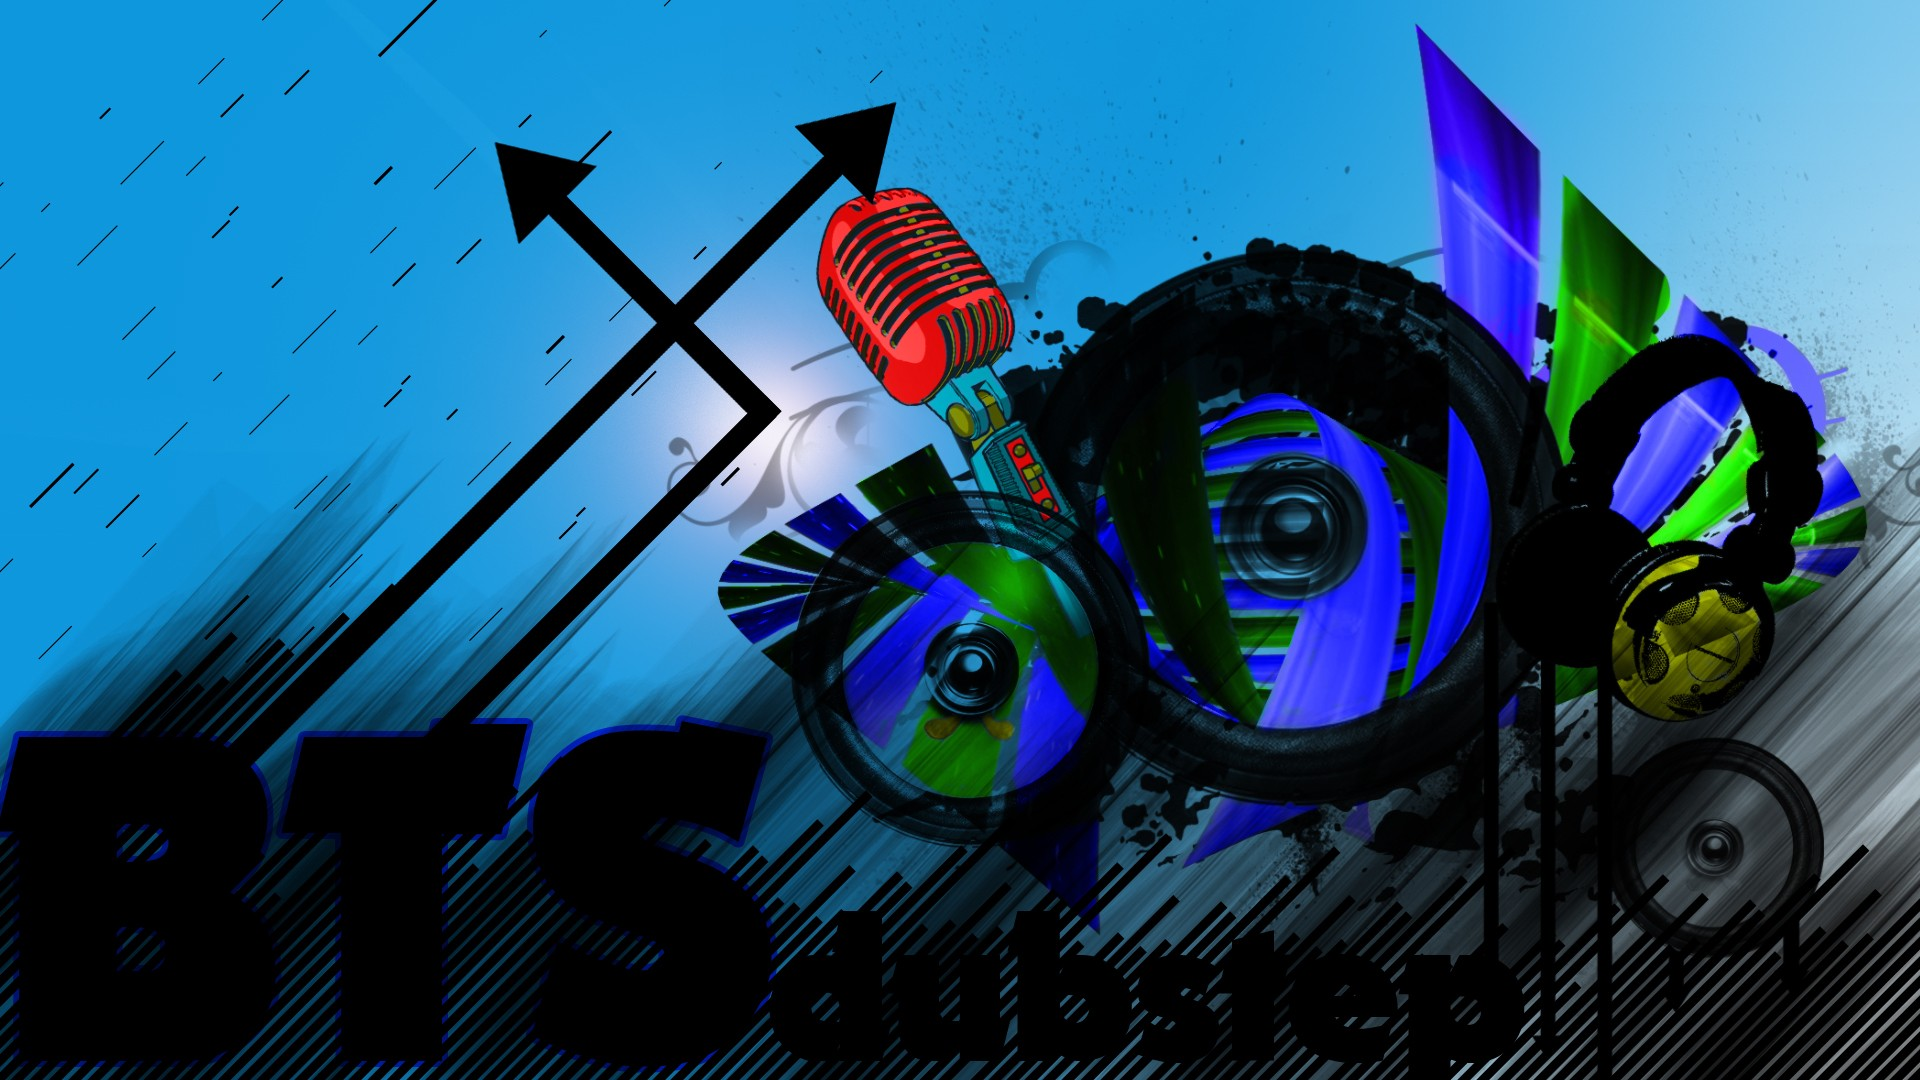 Dubstep Full HD Wallpaper And Background Image